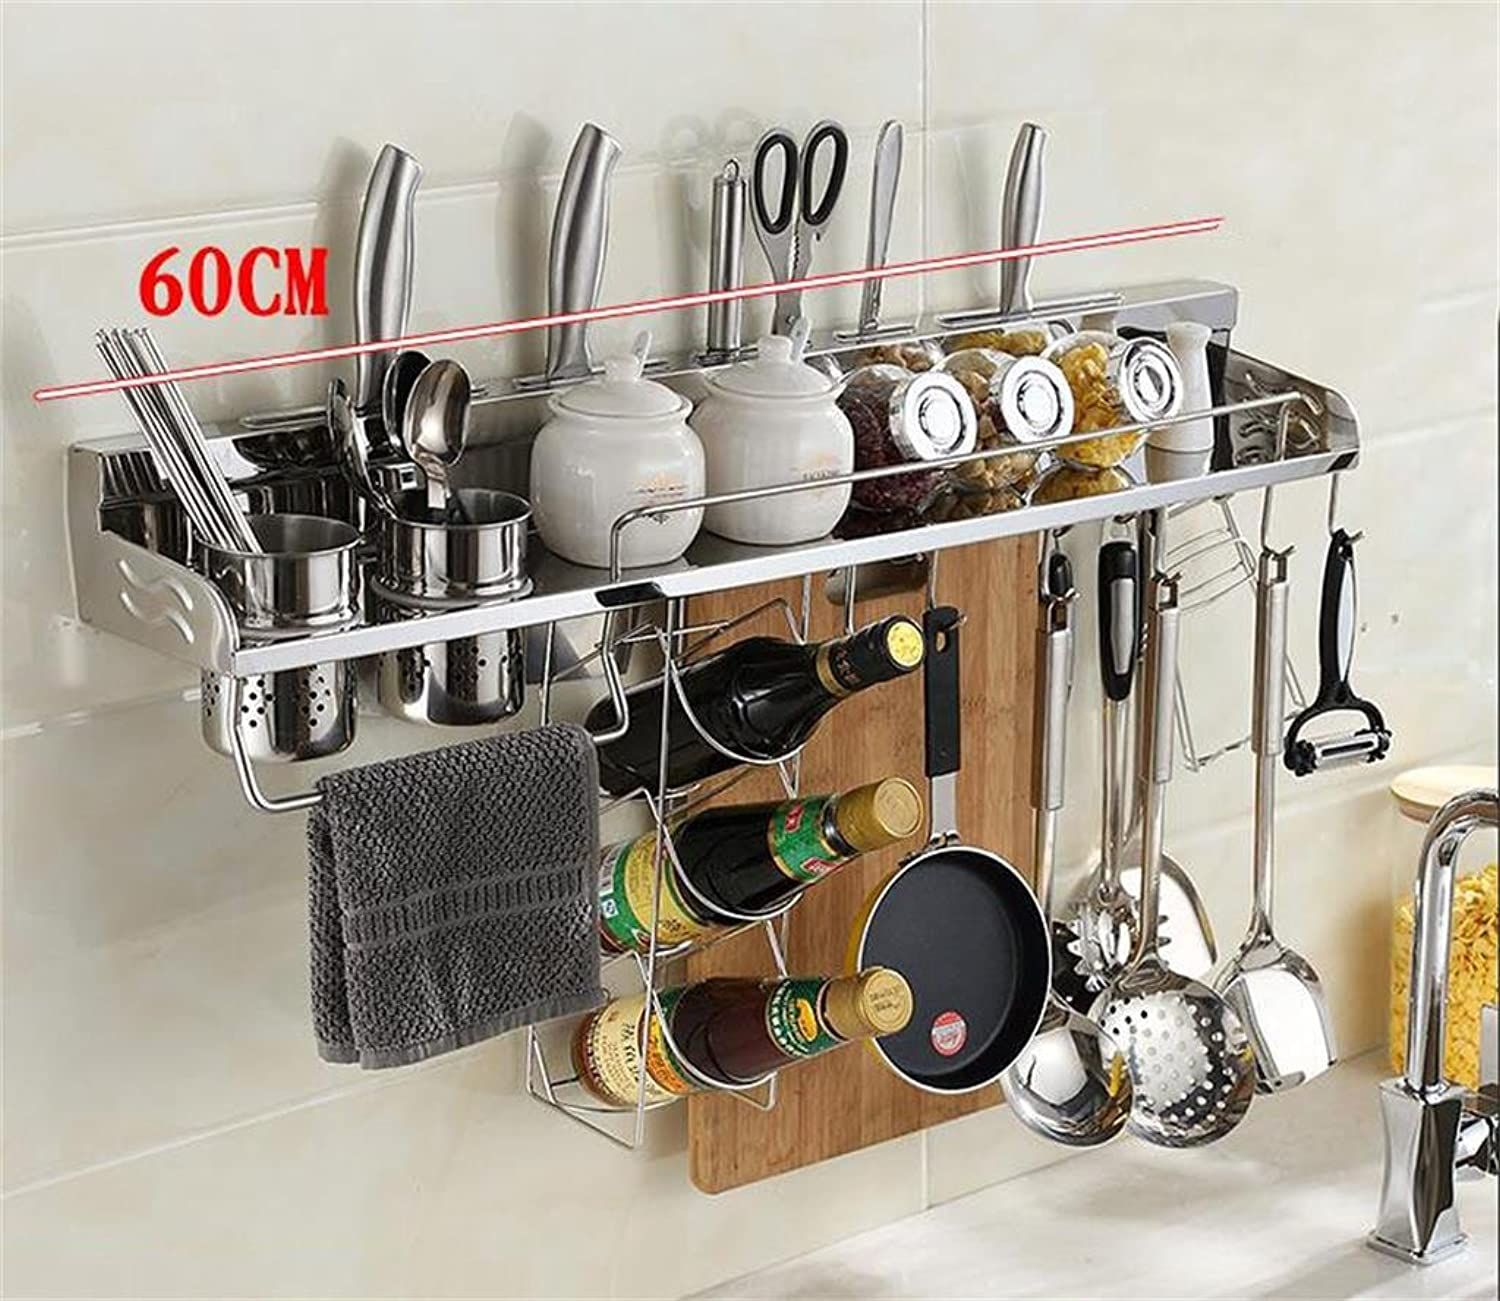 BJLWT Stainless Steel Kitchen Shelving Wall Spice Rack Storage Rack Knife Block Kitchen Shelf Organizer Goods Racks (Size   60CM)